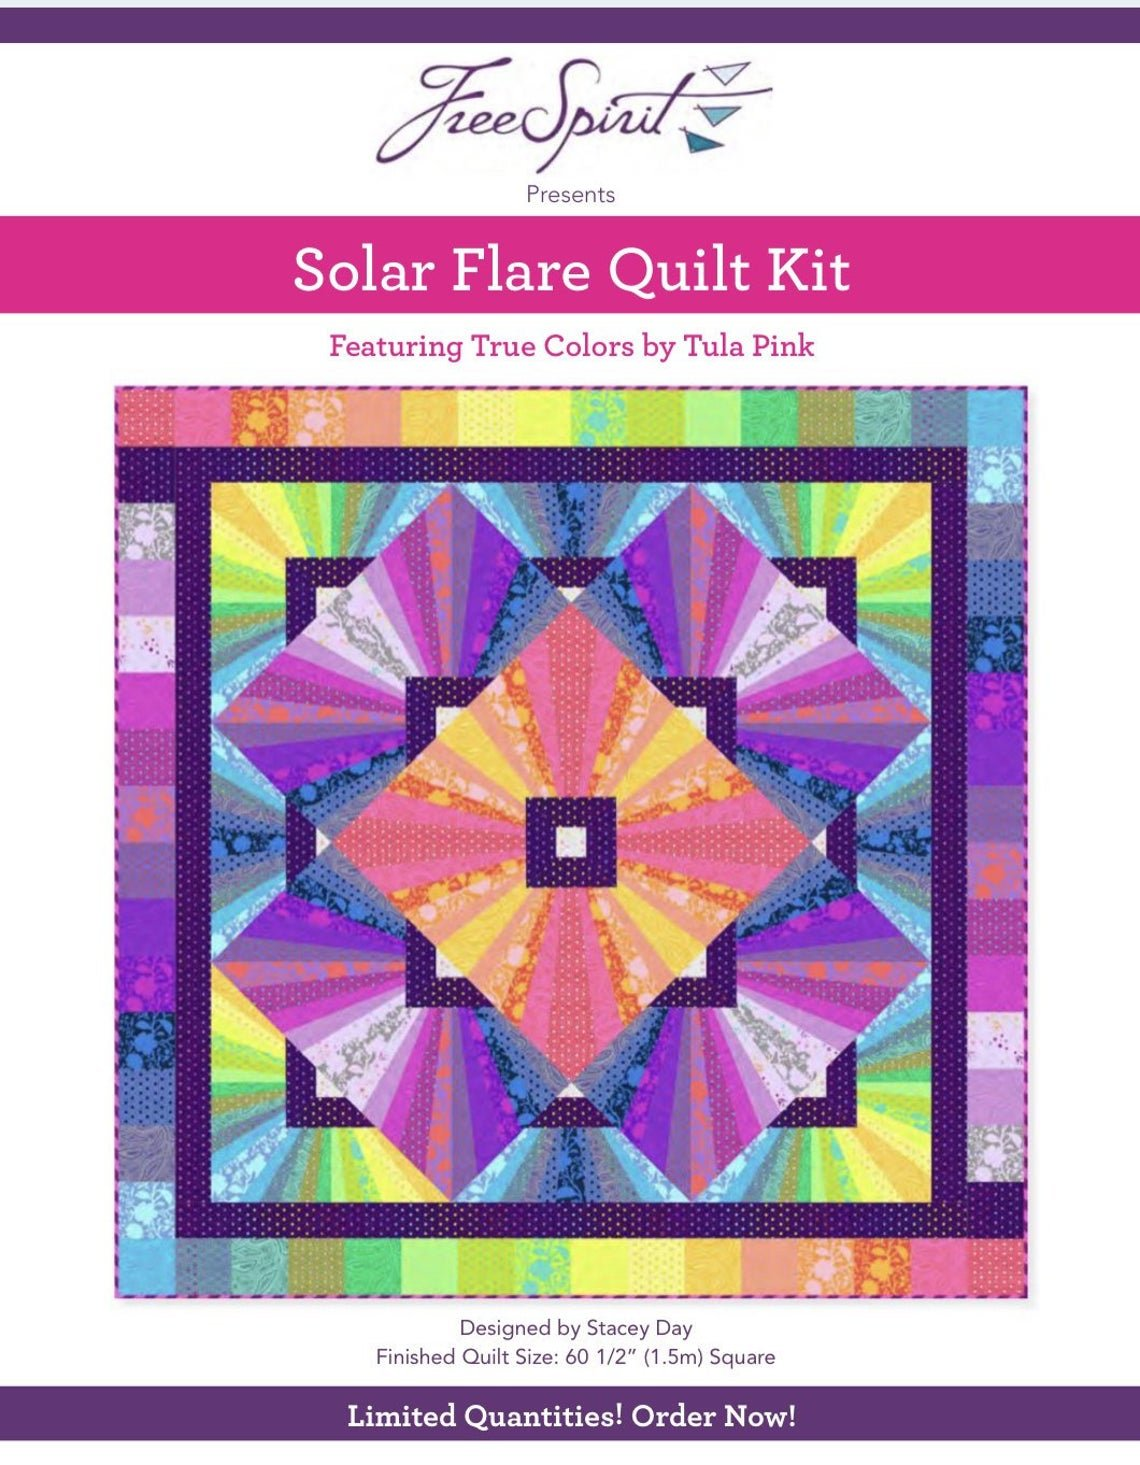 Solar Flare Kit by Tula Pink